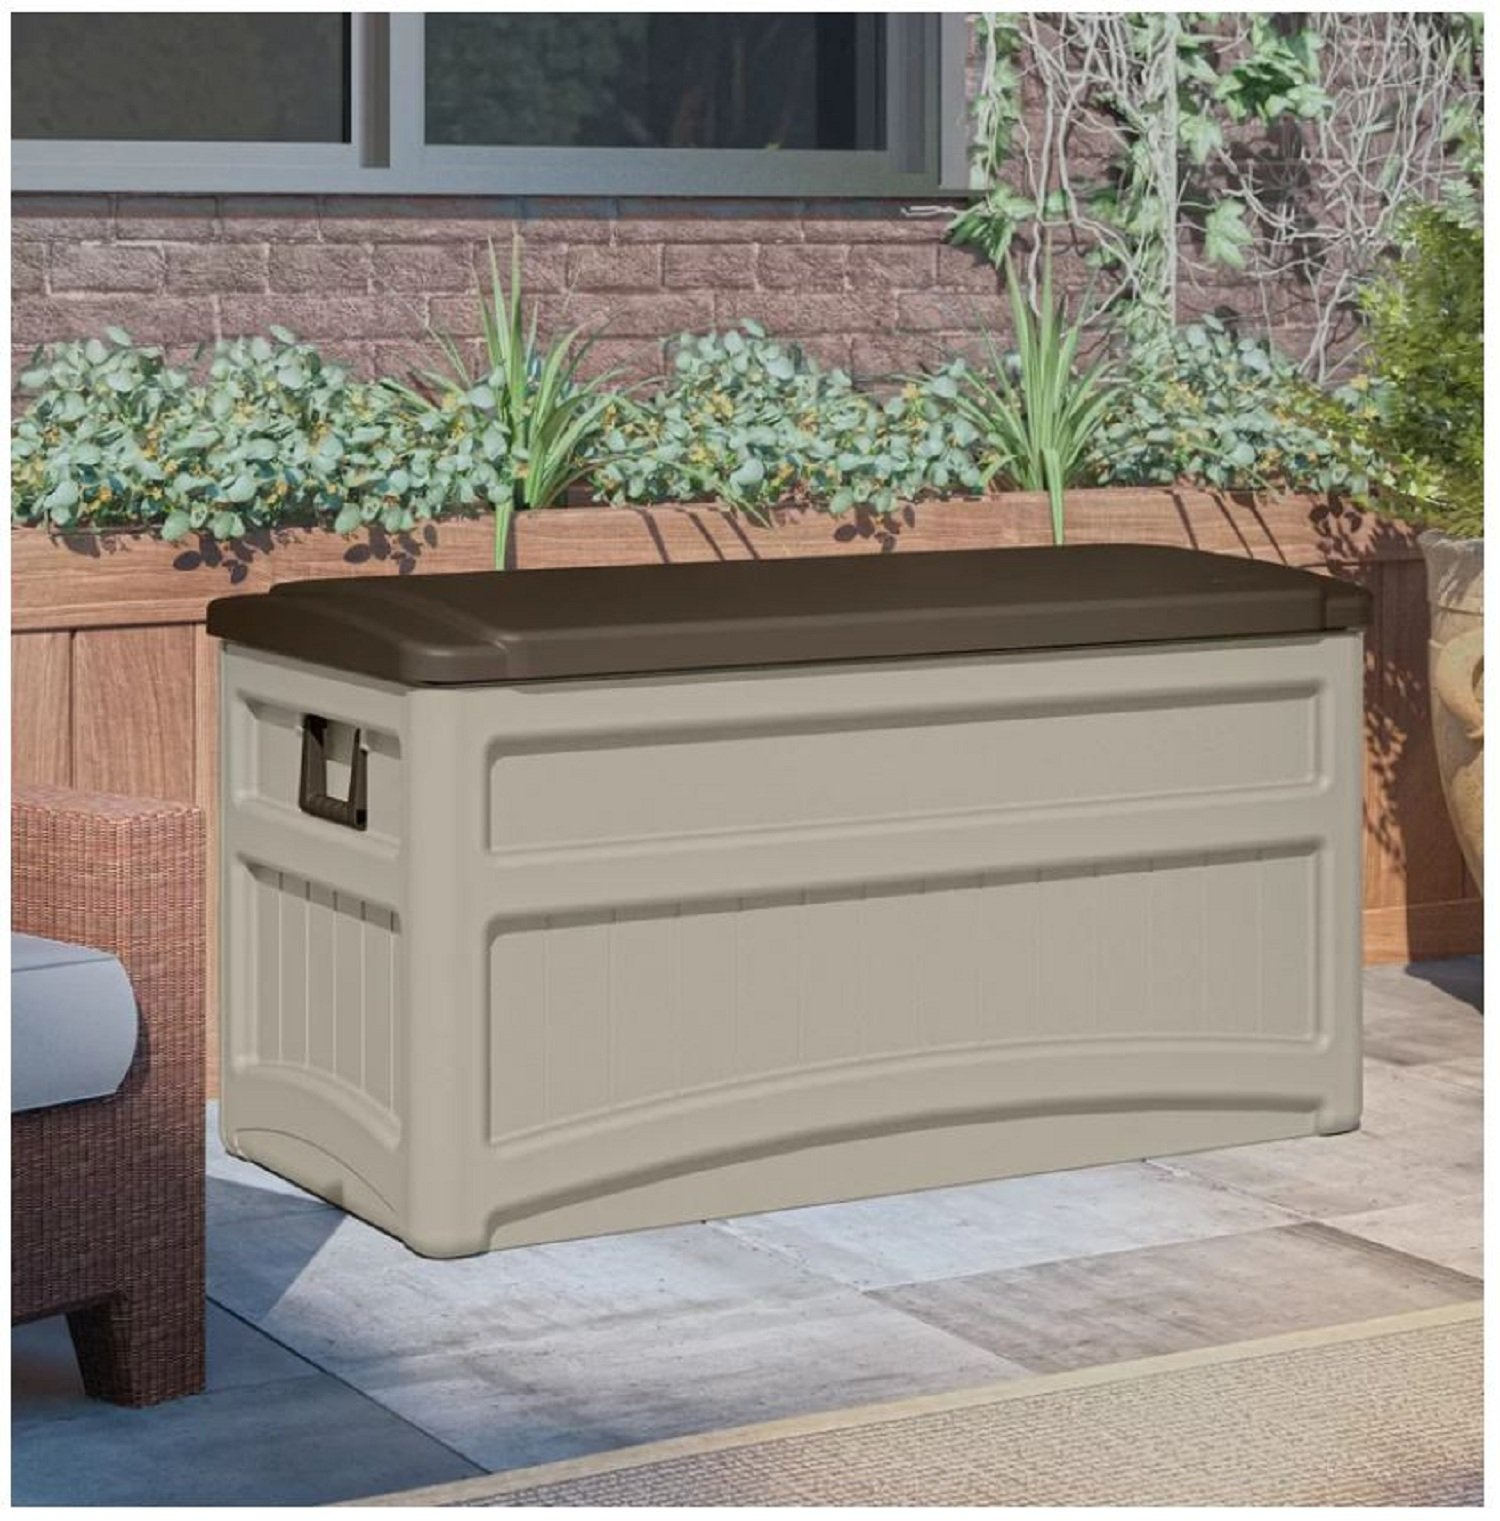 Patio Furniture Deck Box Premium Suncast Outdoor Storage 73 Gallon Resin Waterproof Contemporary With Wheels Weatherproof Design